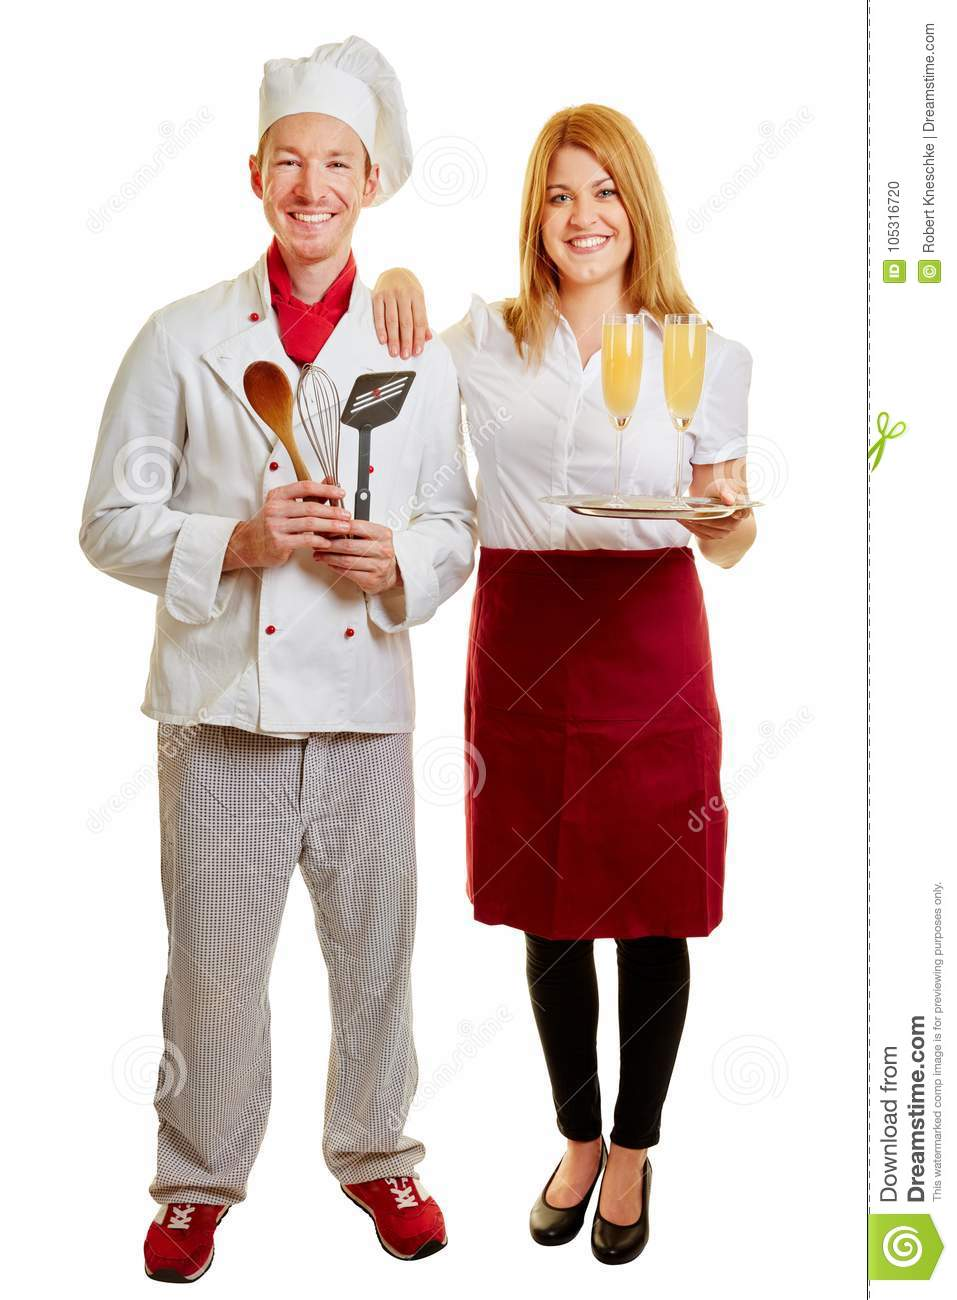 Cook and waitress together as a team